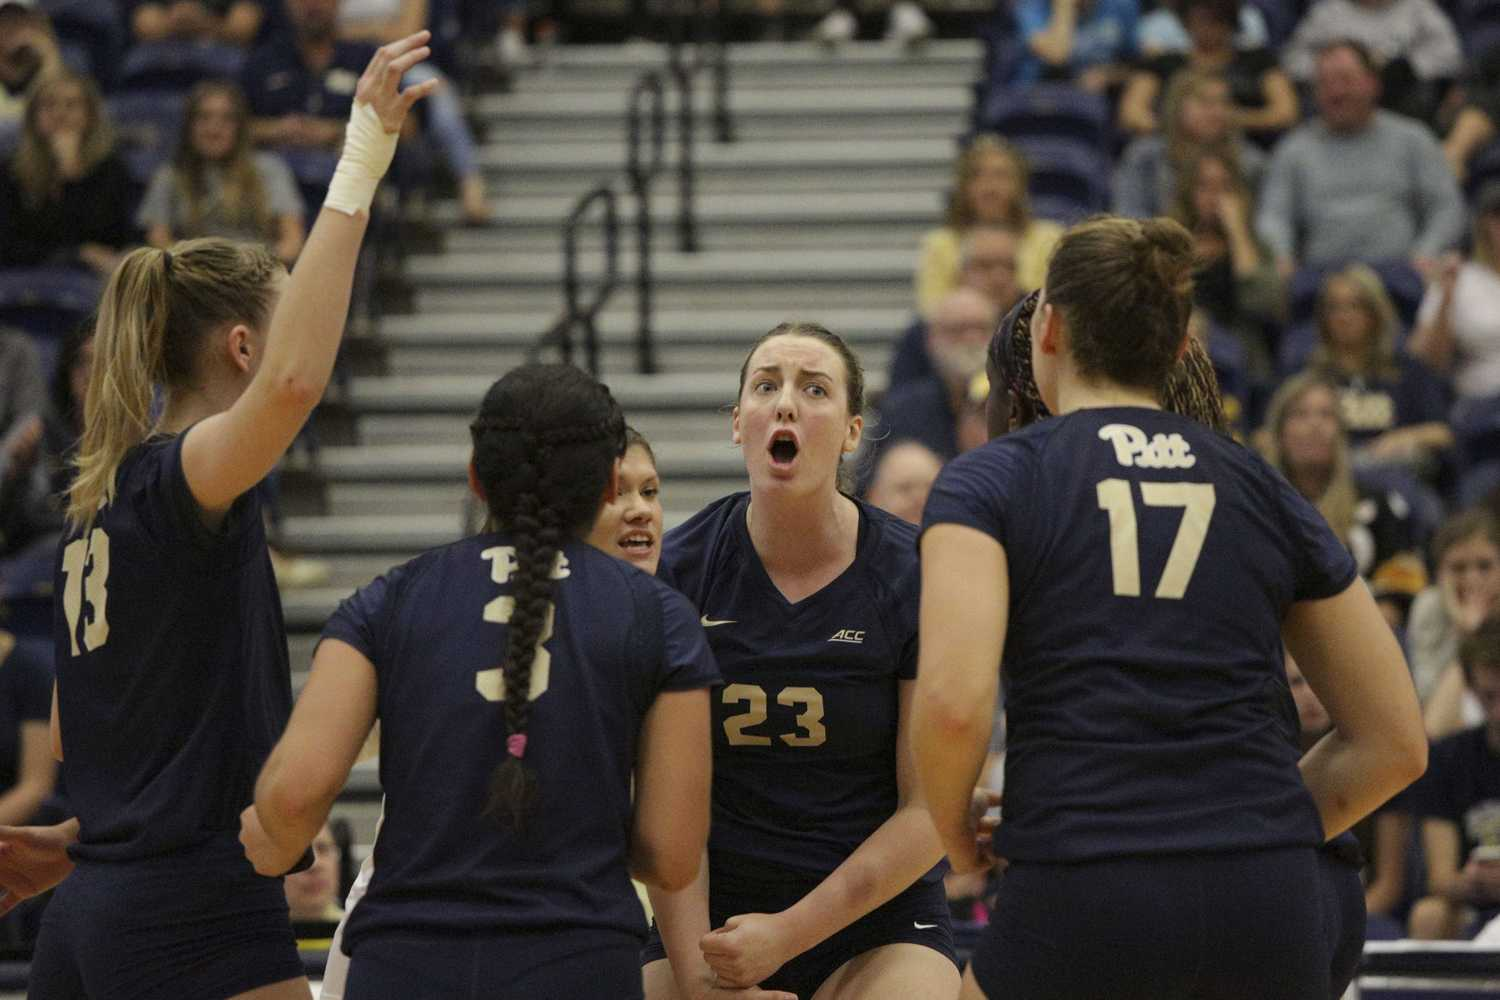 Pitt women's volleyball team is tied with NC State for No. 1 in the conference after their first ACC loss to NC State Sunday. (Photo by Thomas Yang | Senior Staff Photographer)